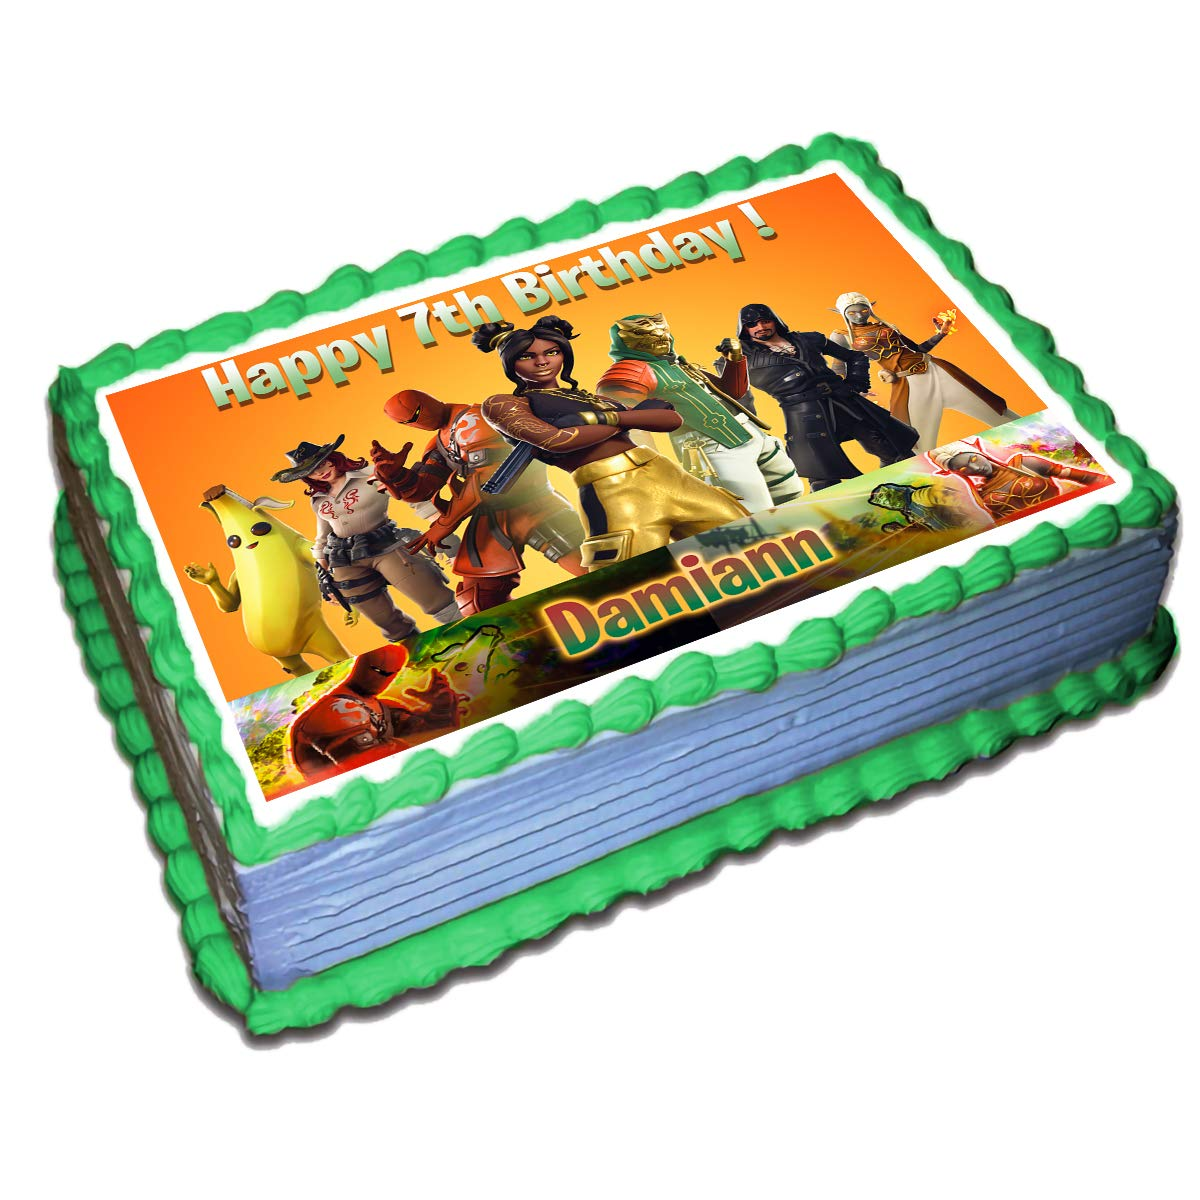 Fortnite (8 Season) Personalized Cake Toppers Icing Sugar ...